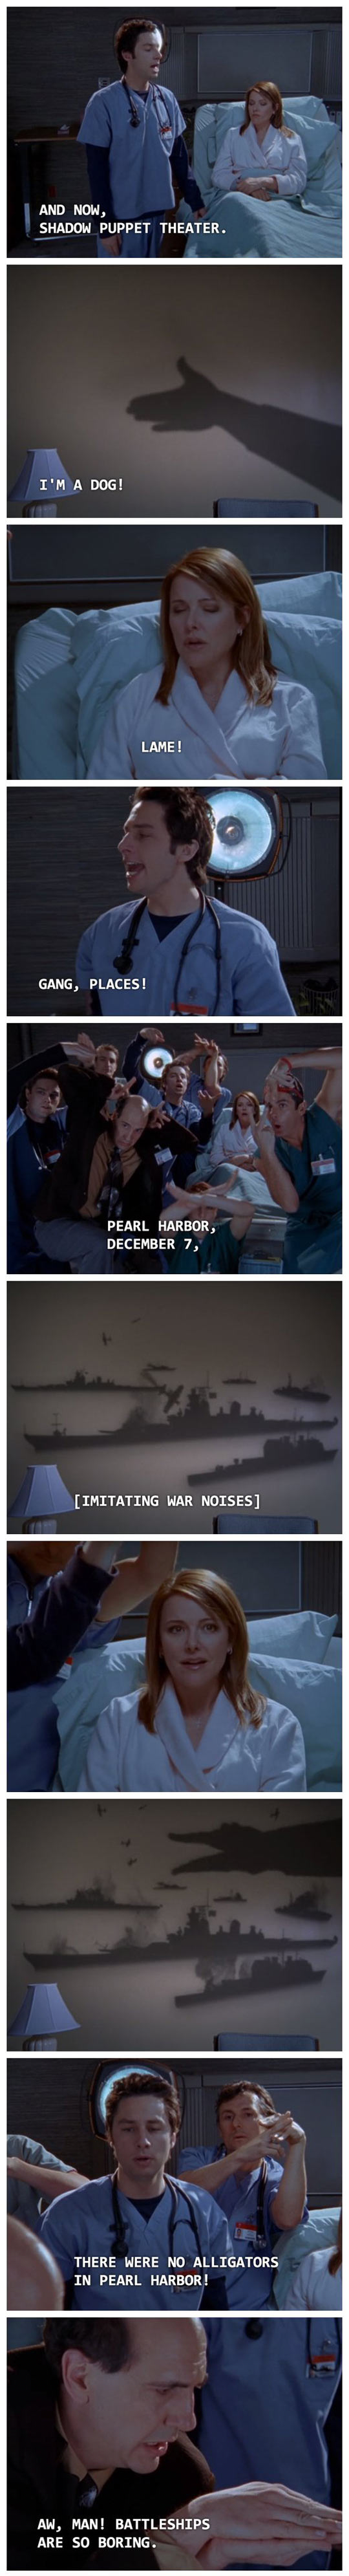 funny-Scrubs-shadow-puppets-theater